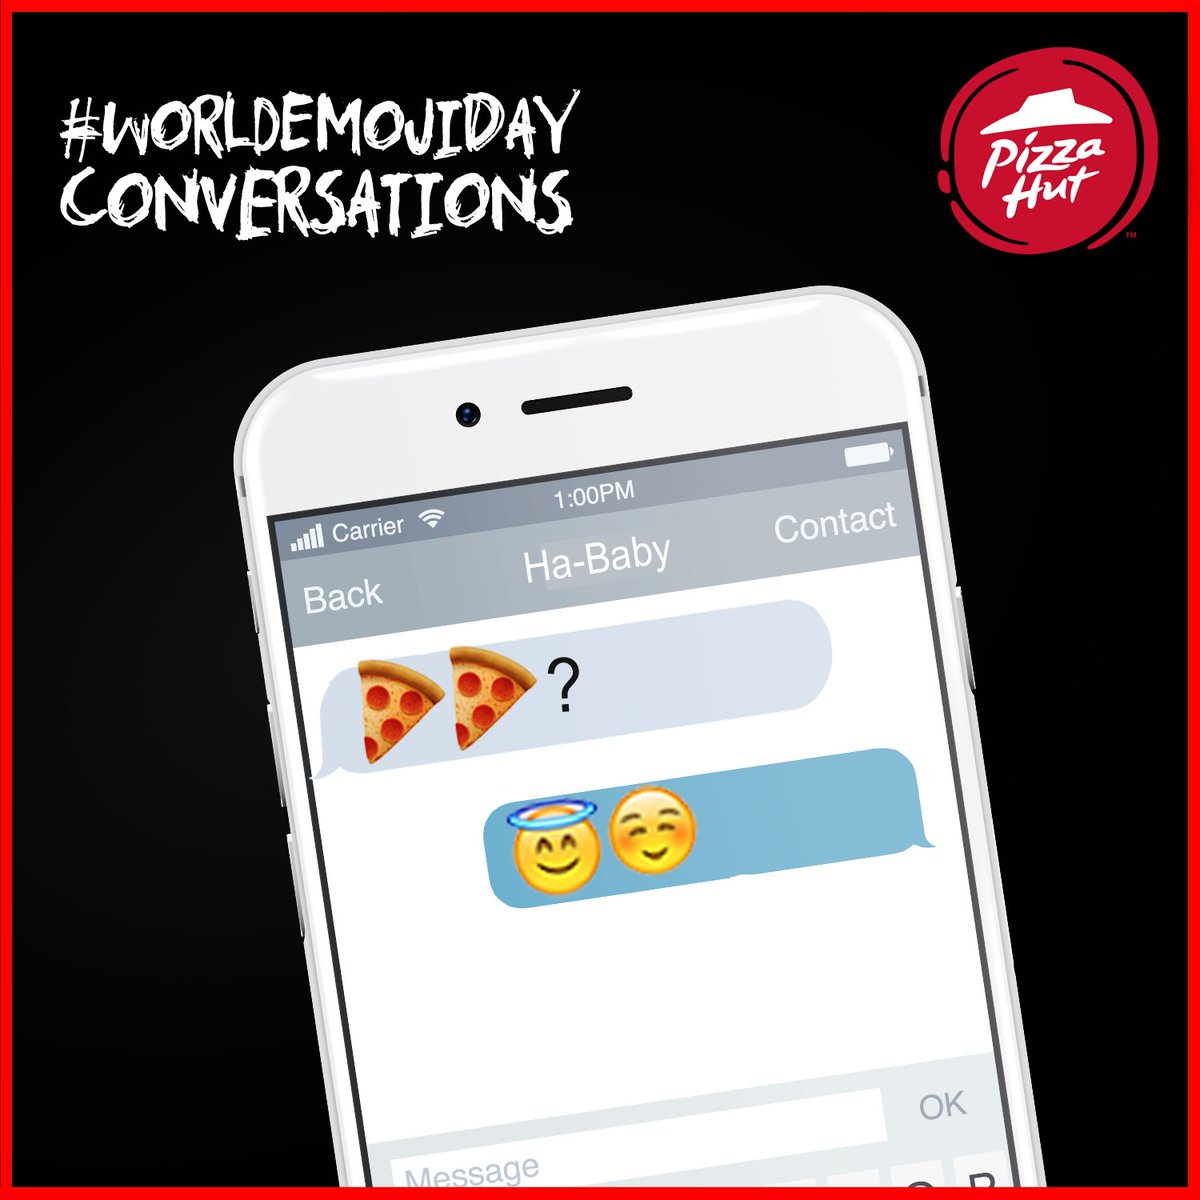 Pizza always gets all the happy emojis, there is never a sad one WorldEmojiDay https t.co YAzDUF1MqX